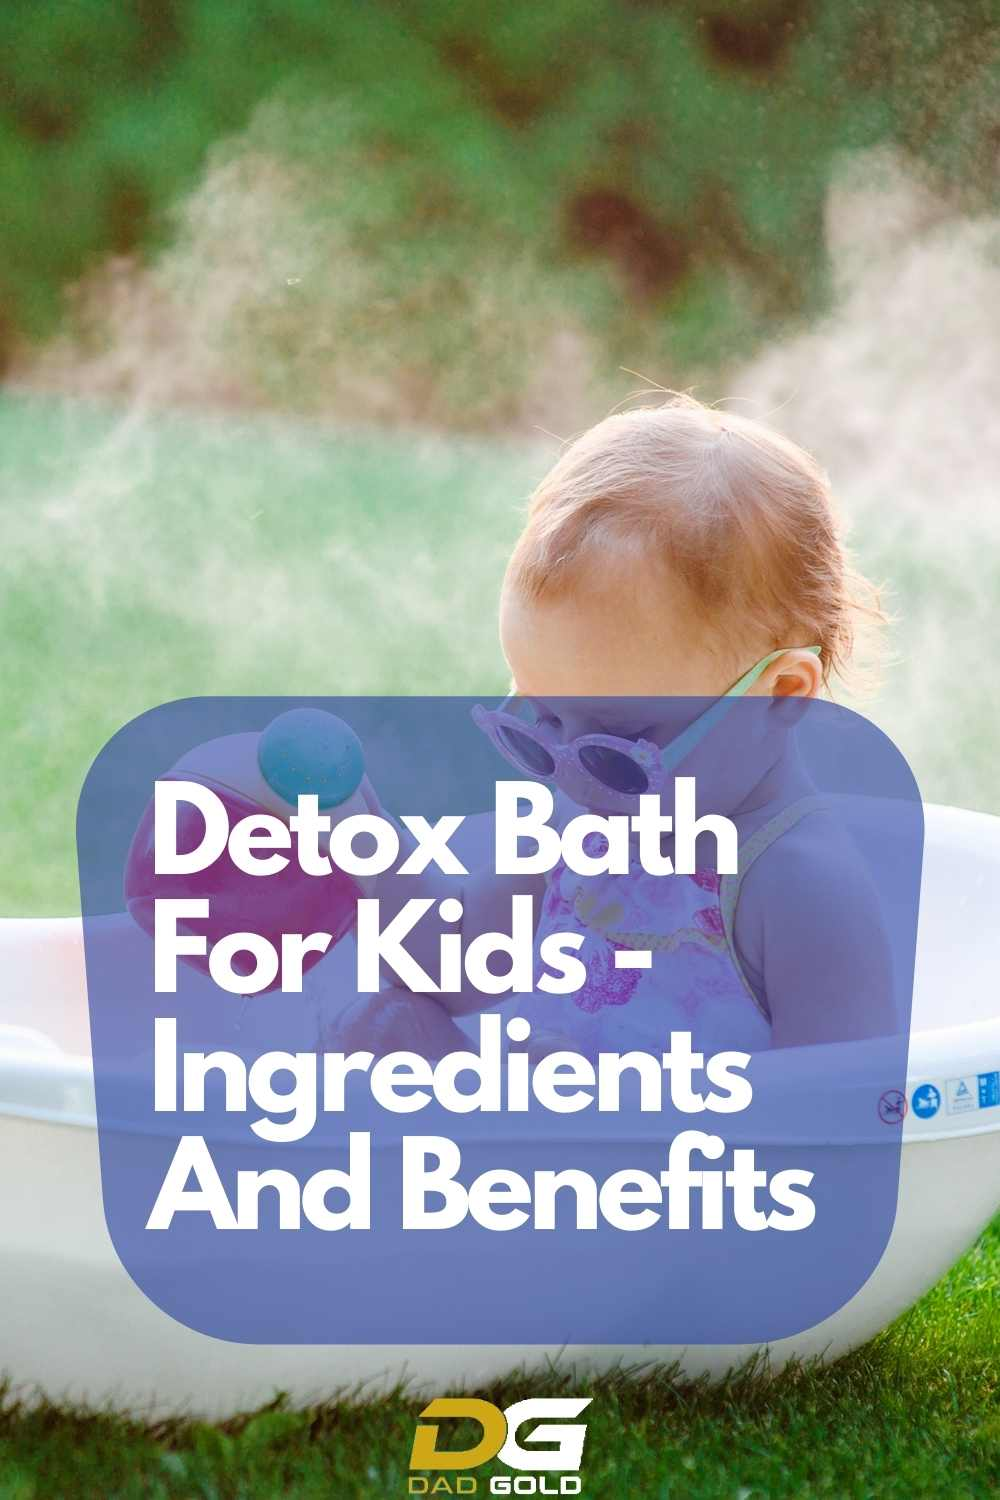 Detox Bath For Kids - ingredients And Benefits Dadgold Parenting Tips